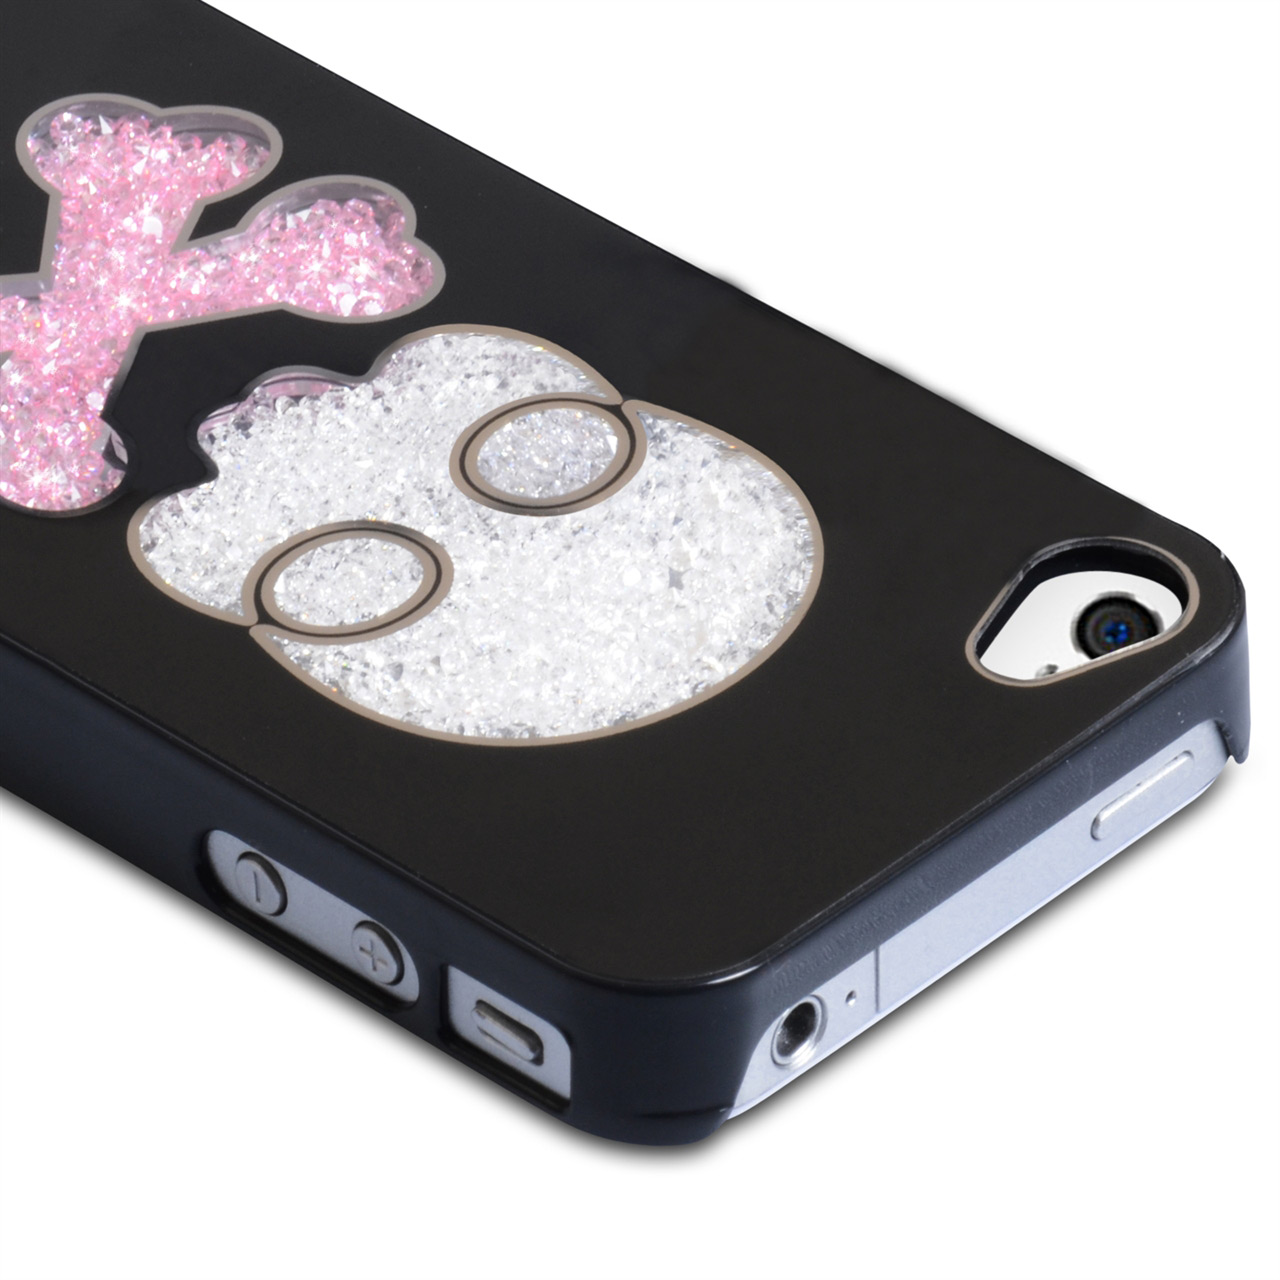 YouSave Accessories iPhone 4 / 4S Skull Hard Case - Black